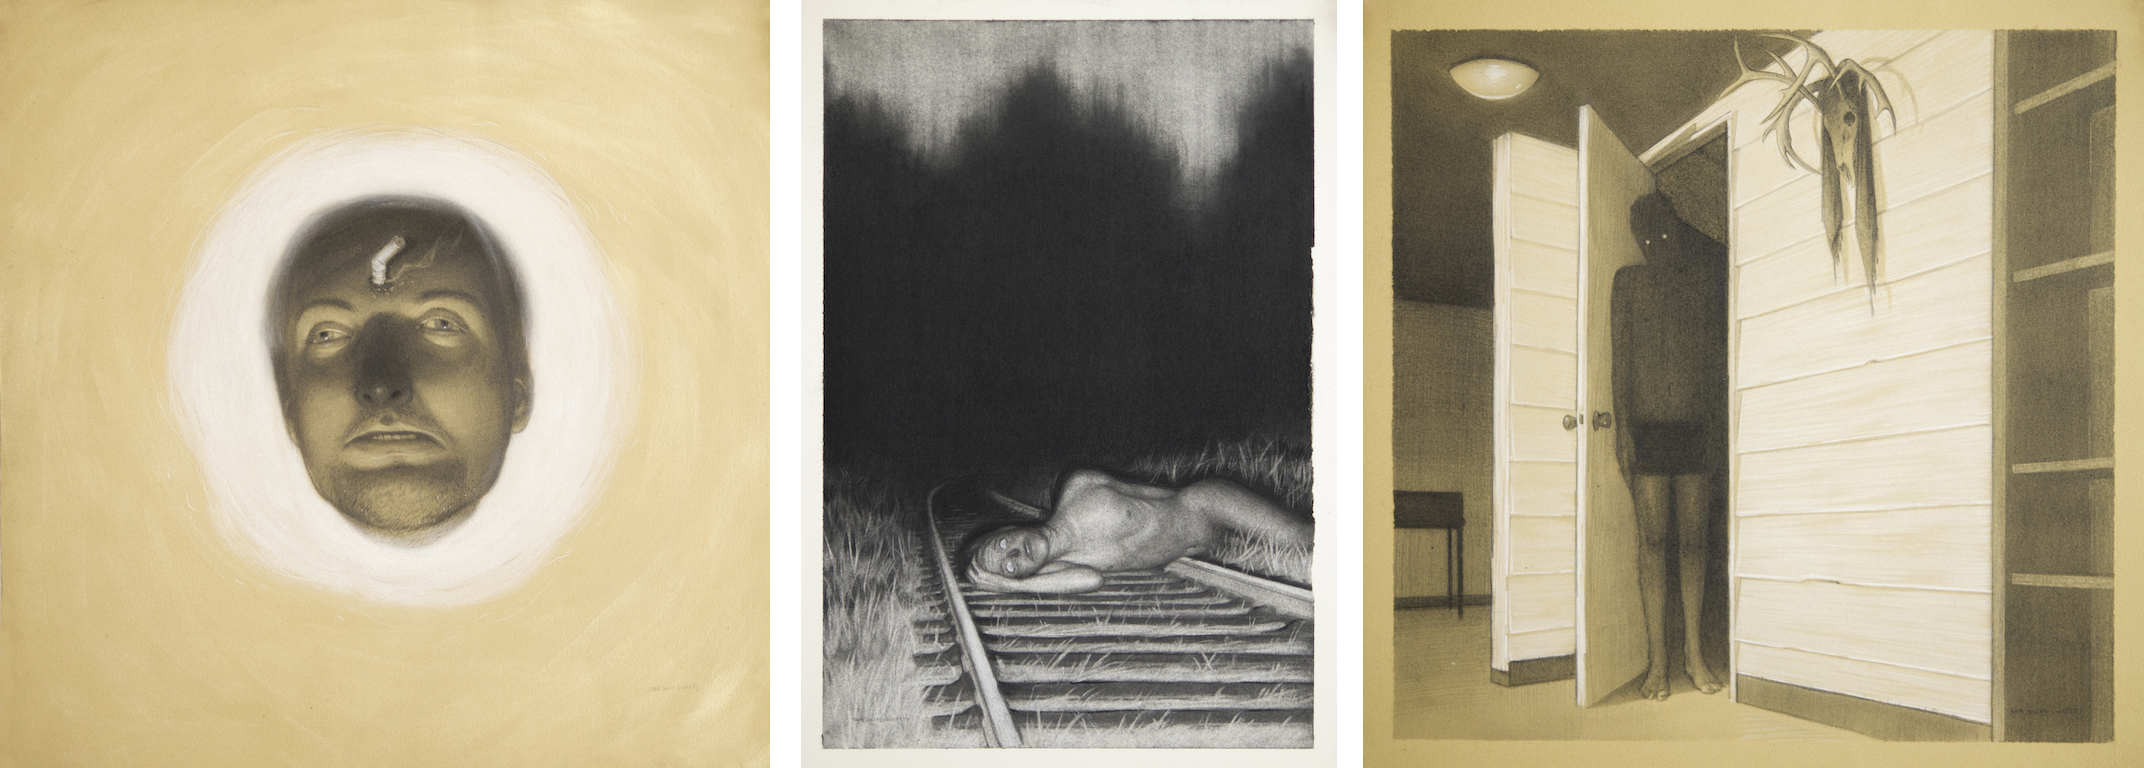 Sam Wolfe Connelly - Lore @ Hashimoto Gallery